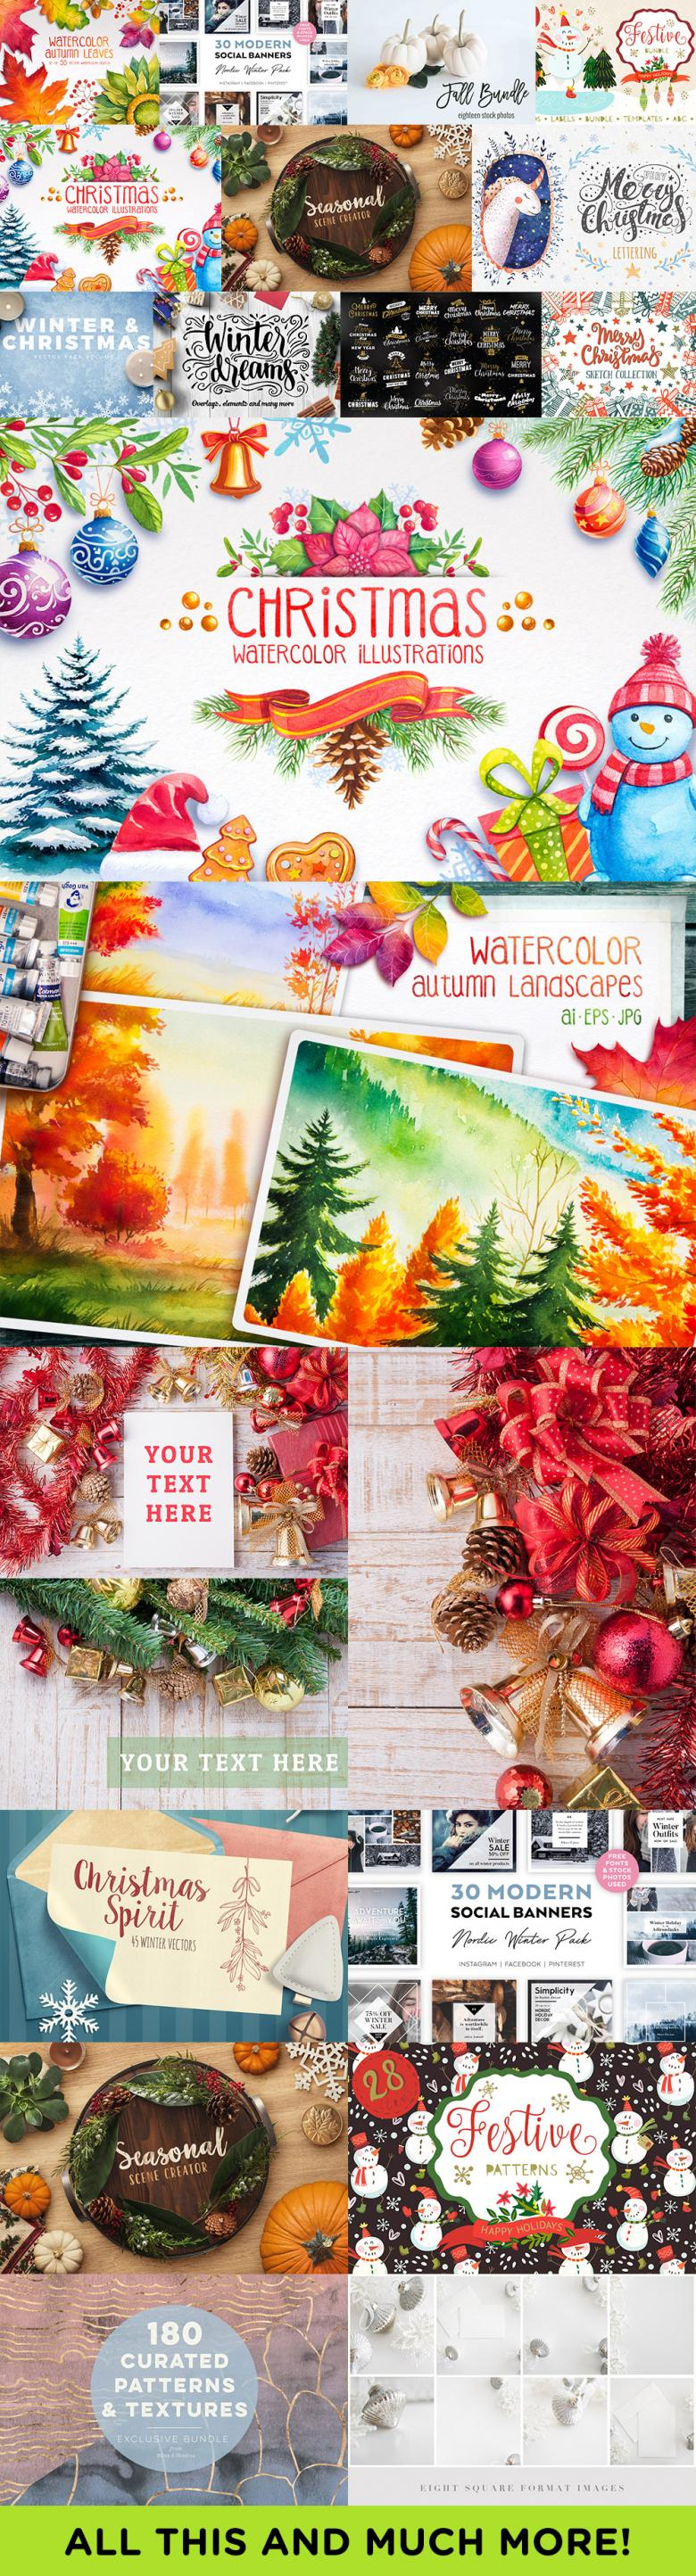 Limited Time: The Exhaustive 2016 Fall and Christmas Collection